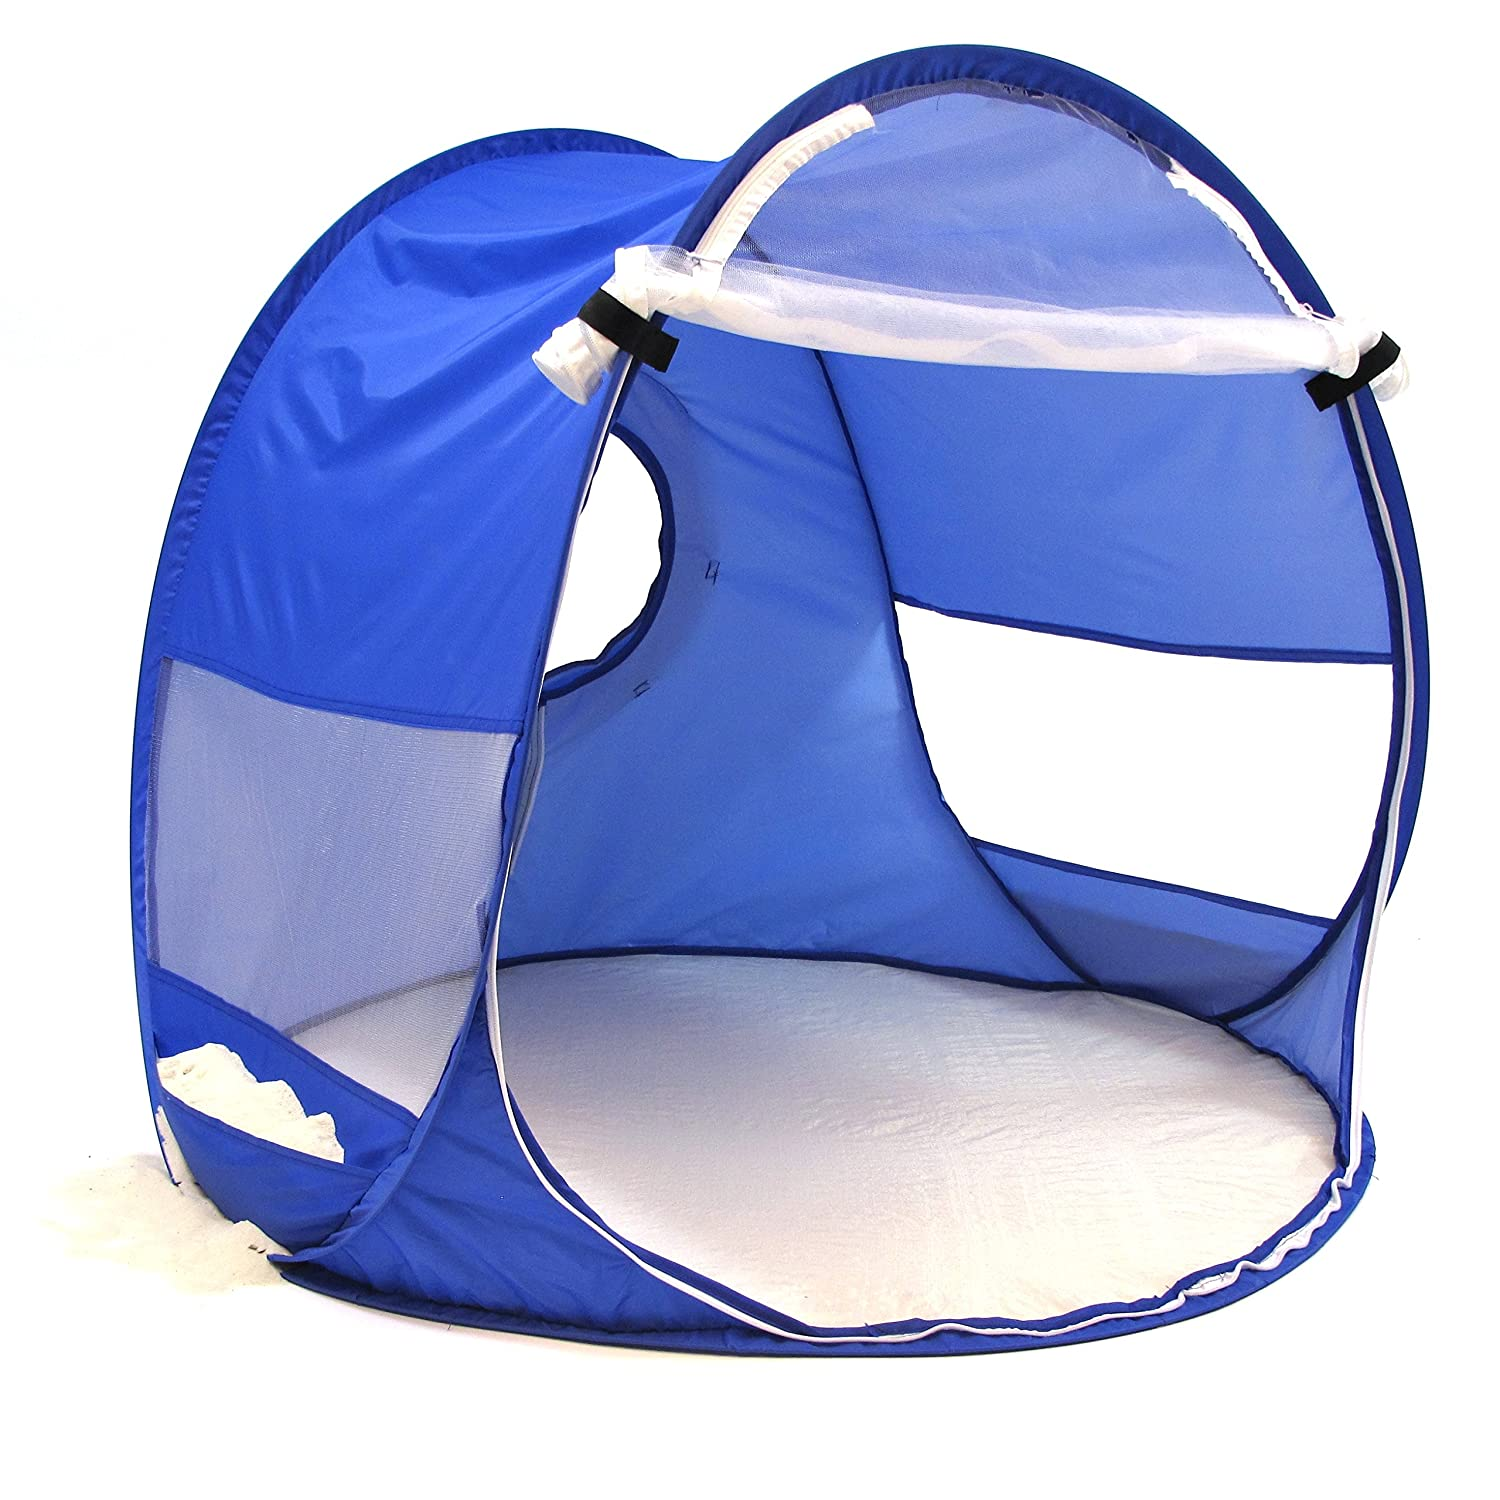 sc 1 st  Amazon.com & Amazon.com : Redmon For Kids Beach Baby Pop-Up Shade Dome : Baby